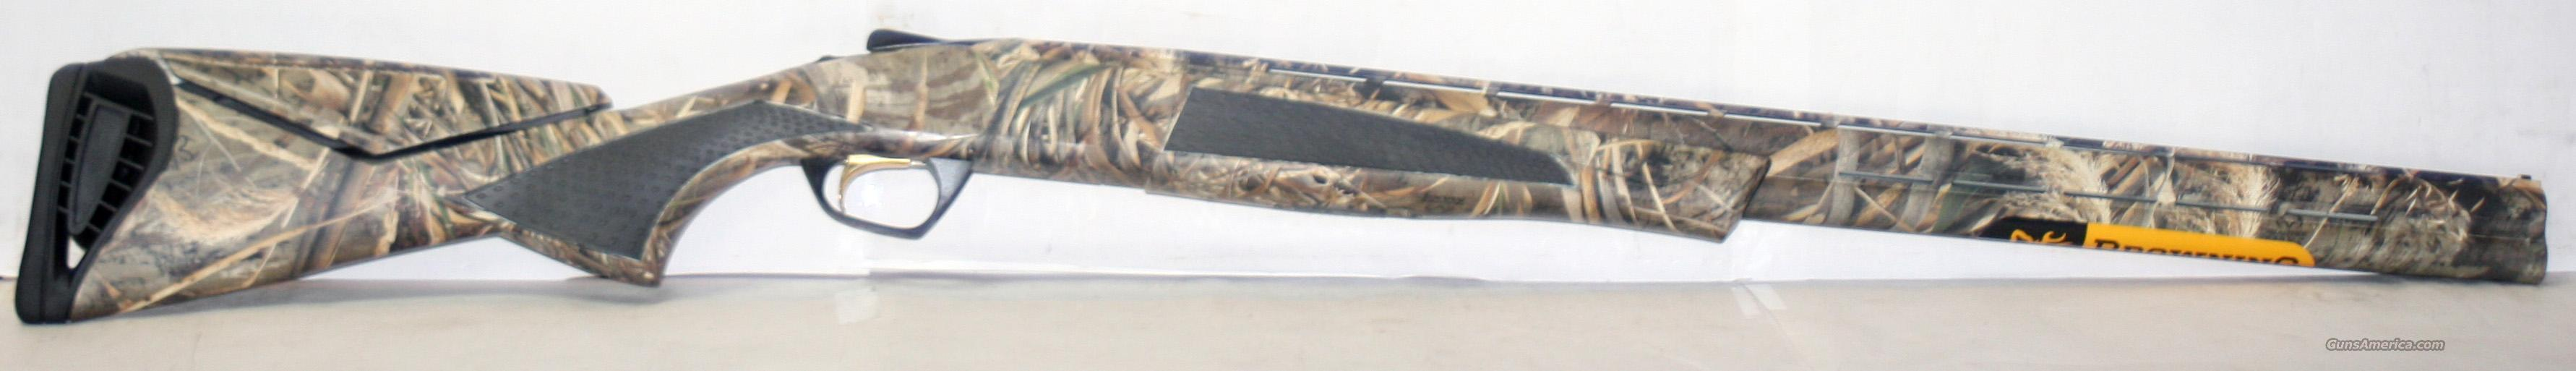 "BROWNING CYNERGY MAX 5 DURA-TOUCH 12 GA / 28"" 3.5"" MAGNUM NEW IN BOX  Guns > Shotguns > Browning Shotguns > Over Unders > Cynergy > Hunting"